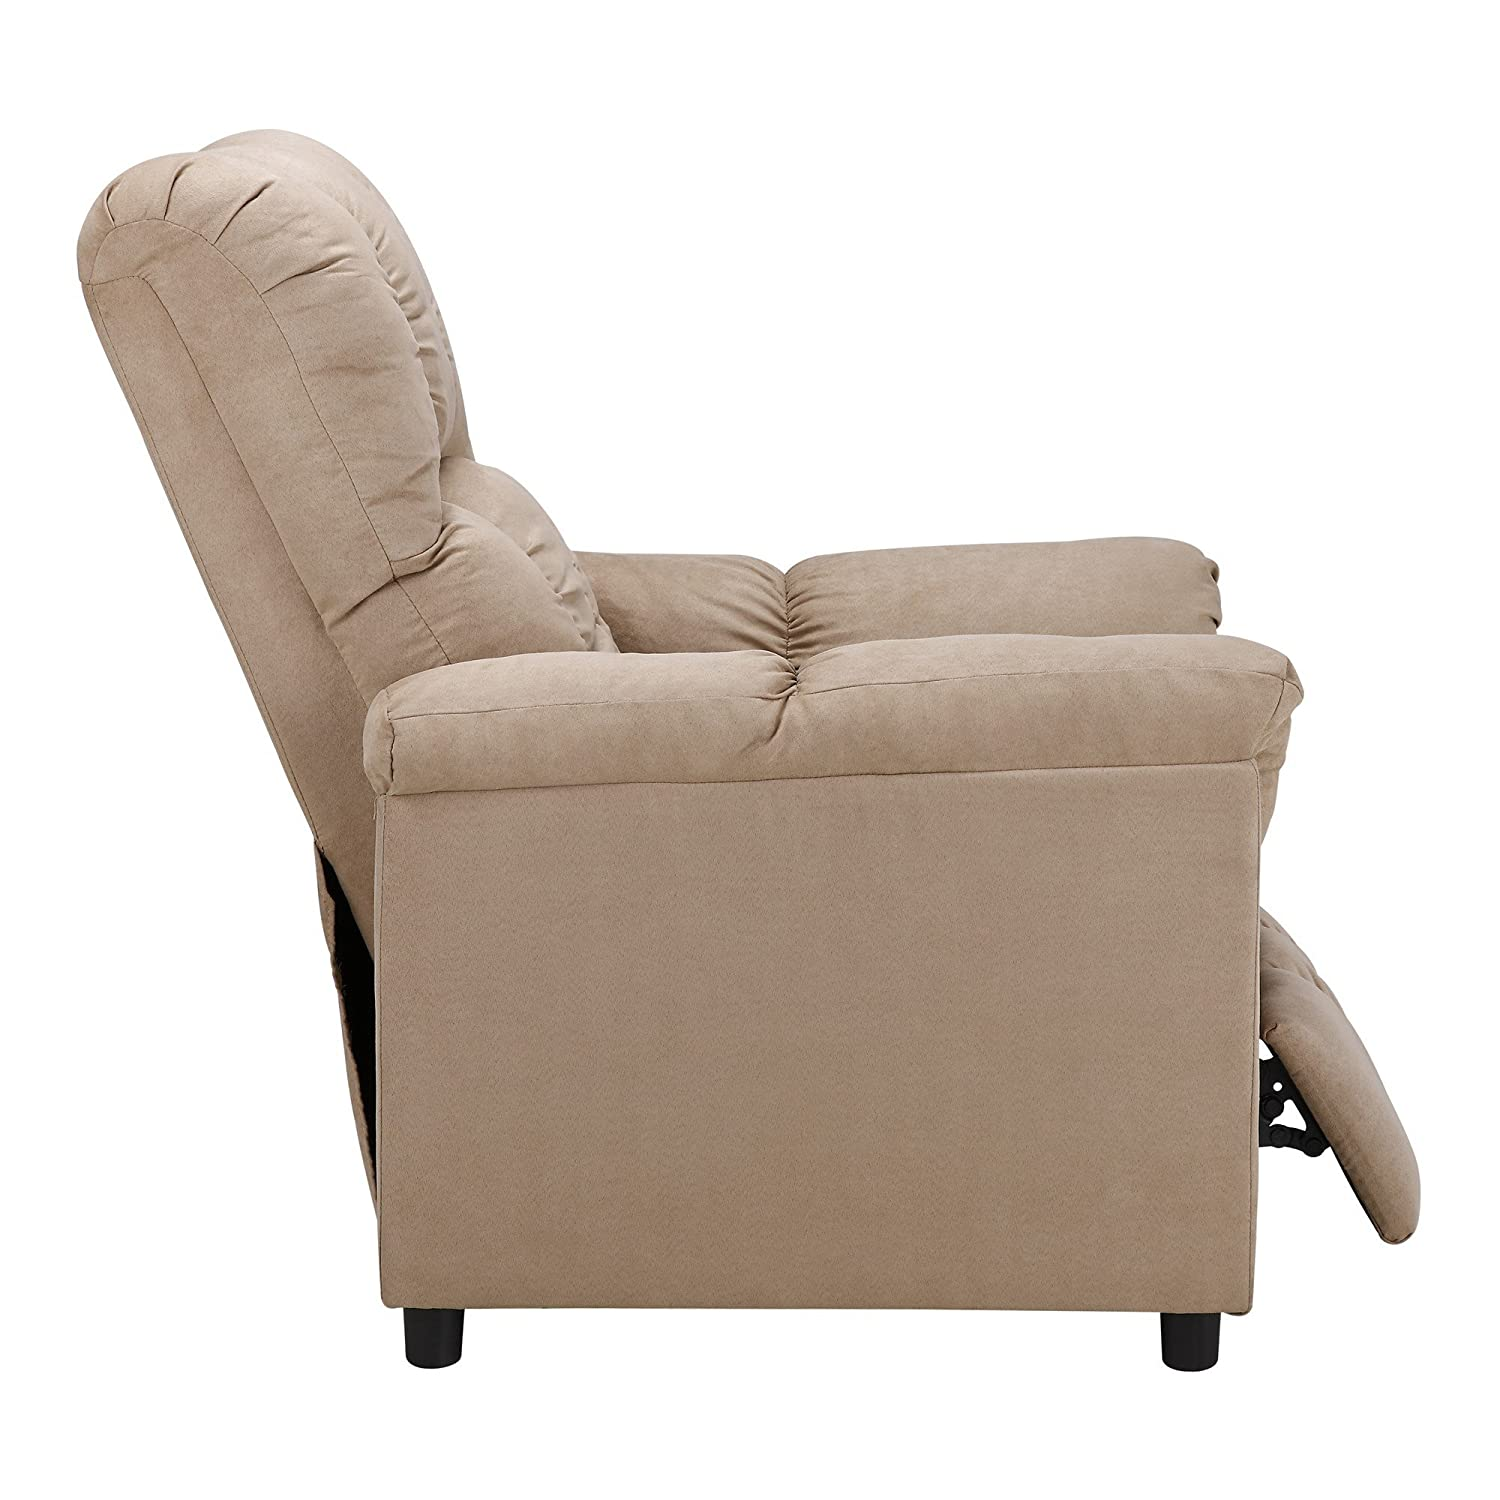 sc 1 st  Amazon.com : new style super comfort recliner - islam-shia.org